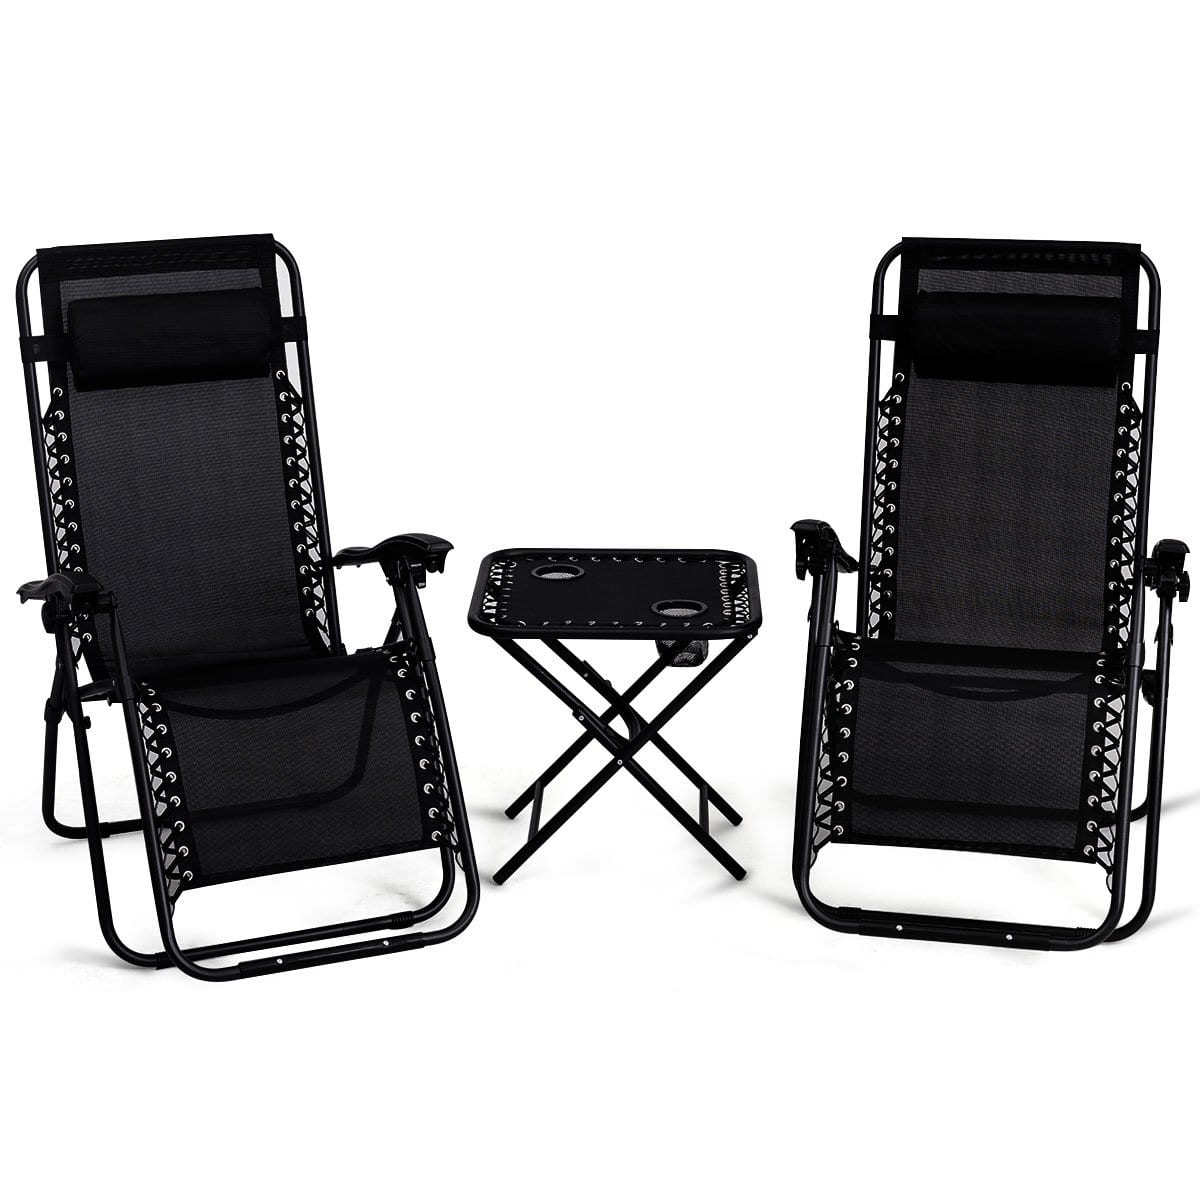 Giantex Zero Gravity Patio Chaise Lounge Chair Set